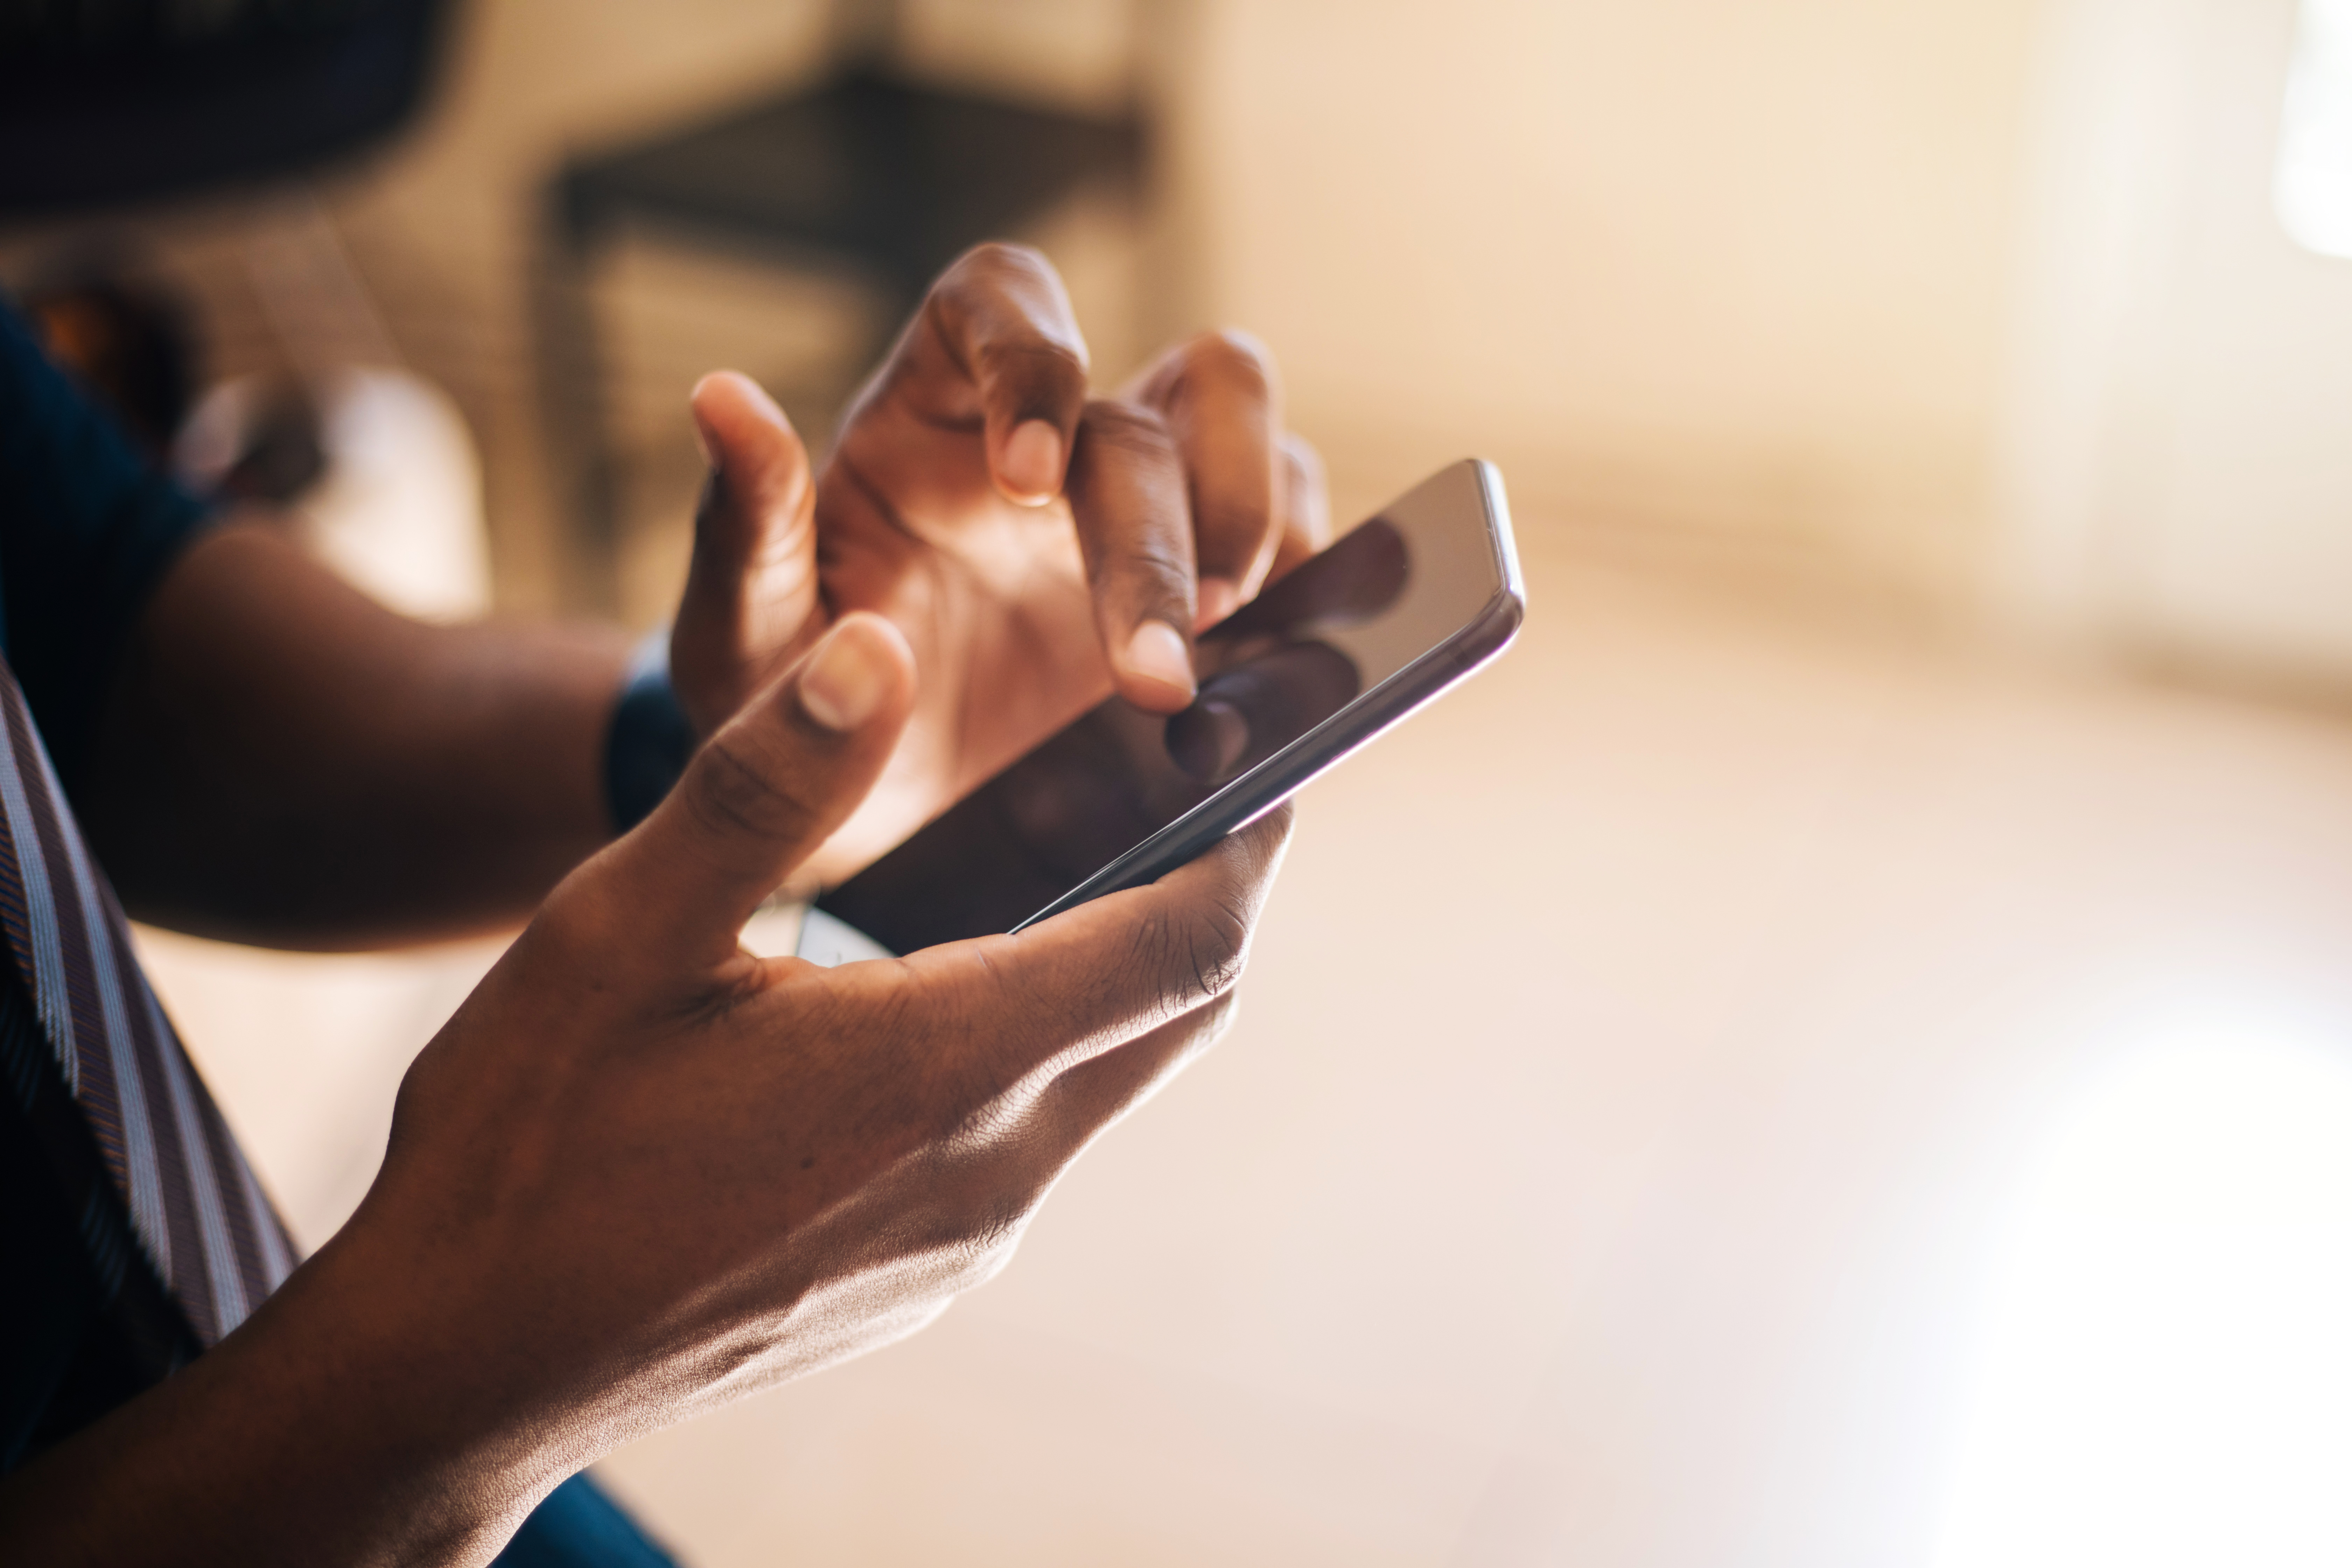 African American man scrolling through page on smartphone